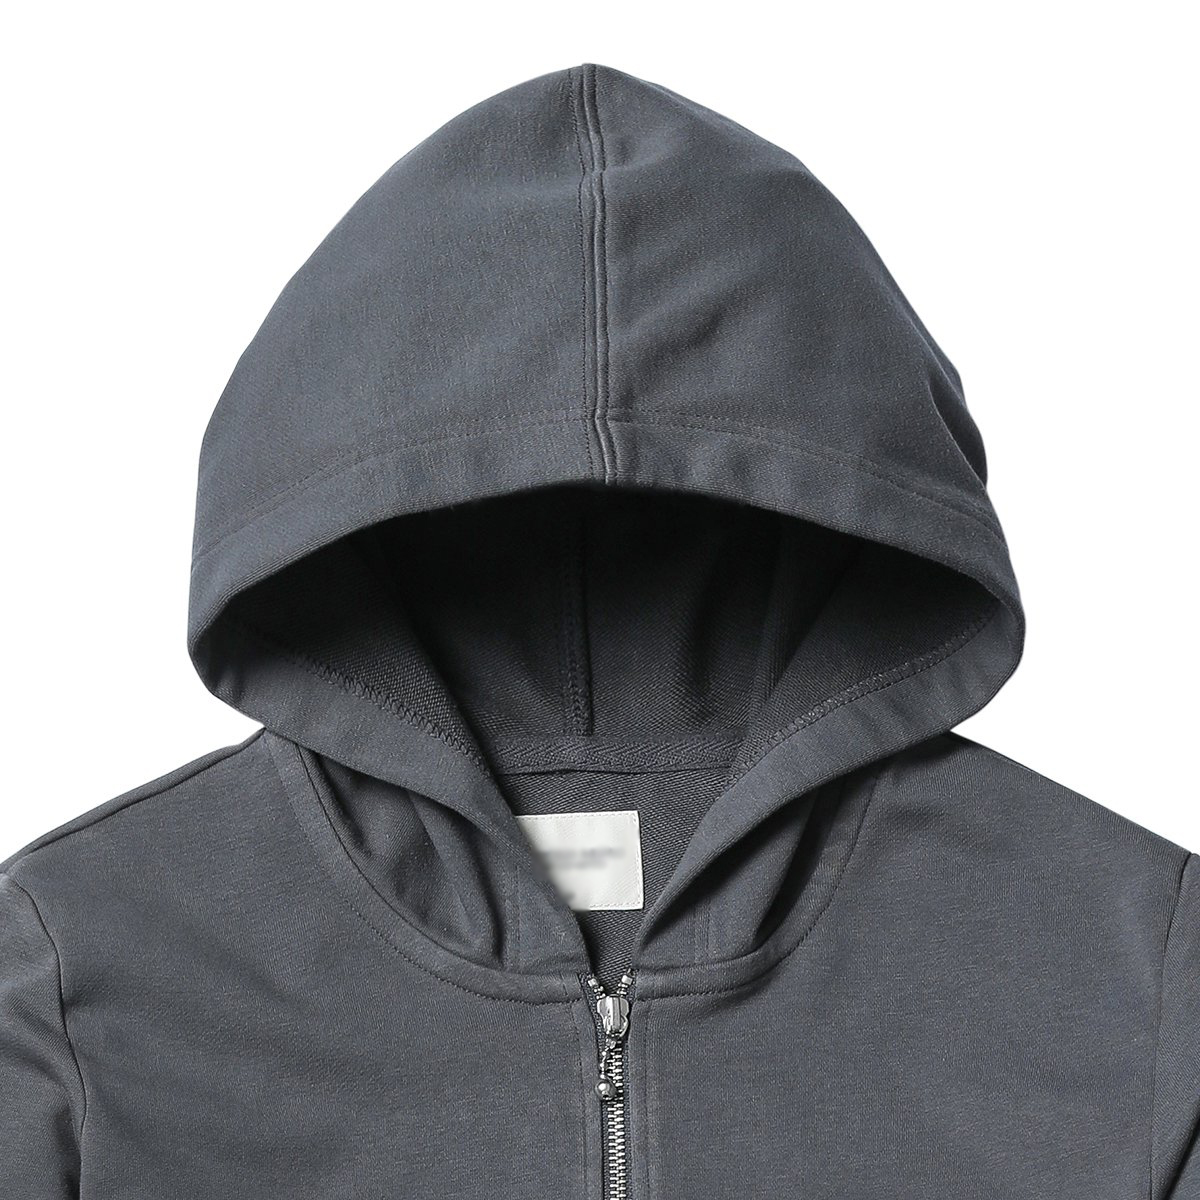 2019good quality custom men hoodie single custom baggy eib with zipper hoodies